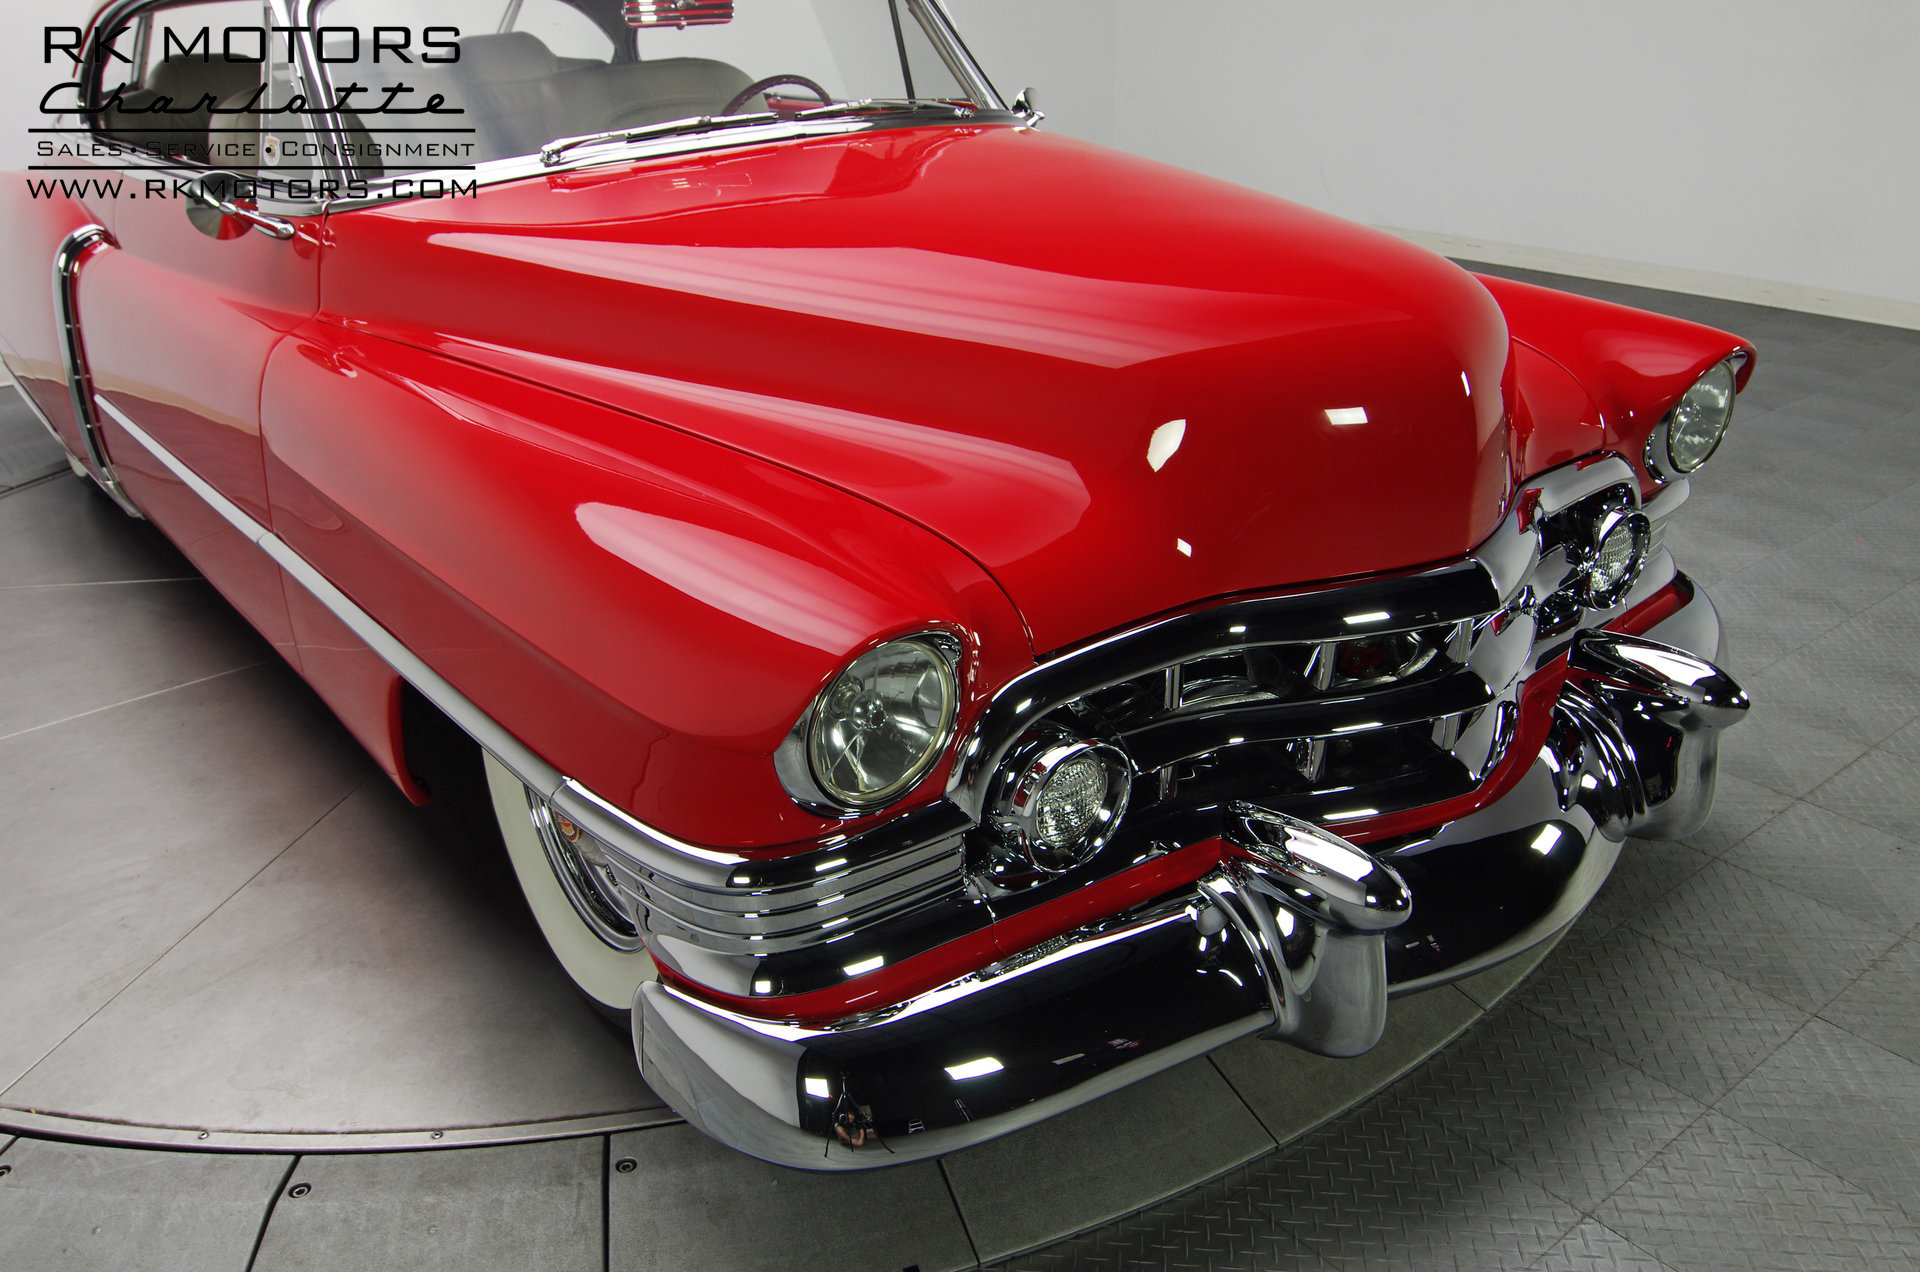 133087 1950 Cadillac Series 61 Rk Motors Classic Cars For Sale 50s V8 Engine